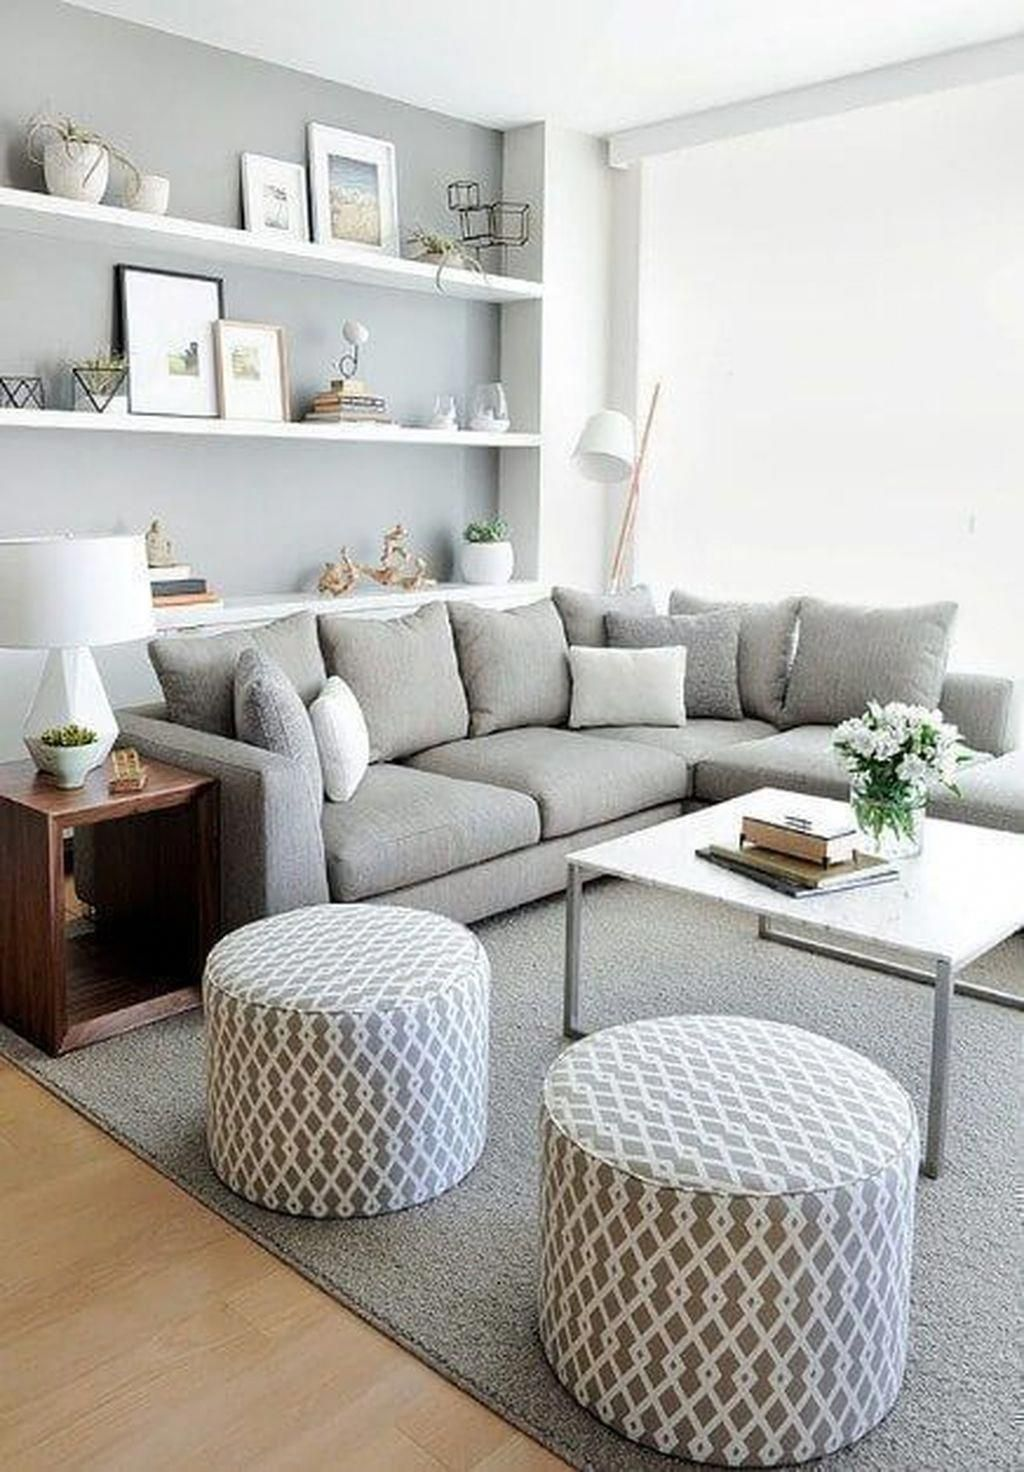 Trendehouse Trending Interior And Exterior Decor Small Living Rooms Living Room Diy Apartment Living Room New living room decoration